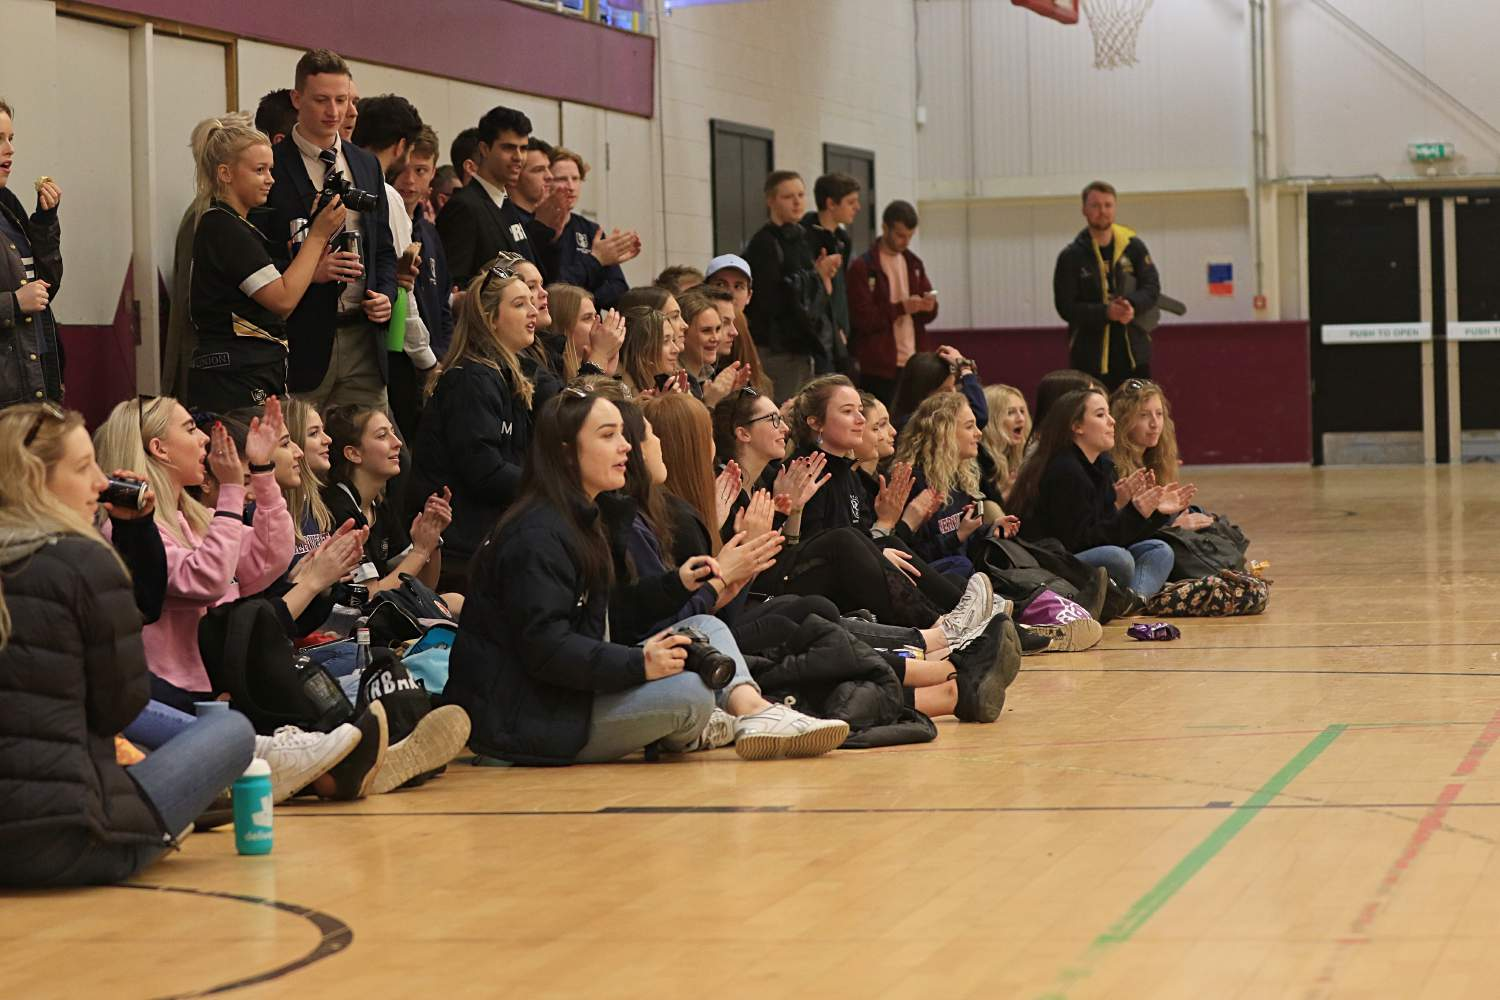 Derwent turning out in force for Netball A